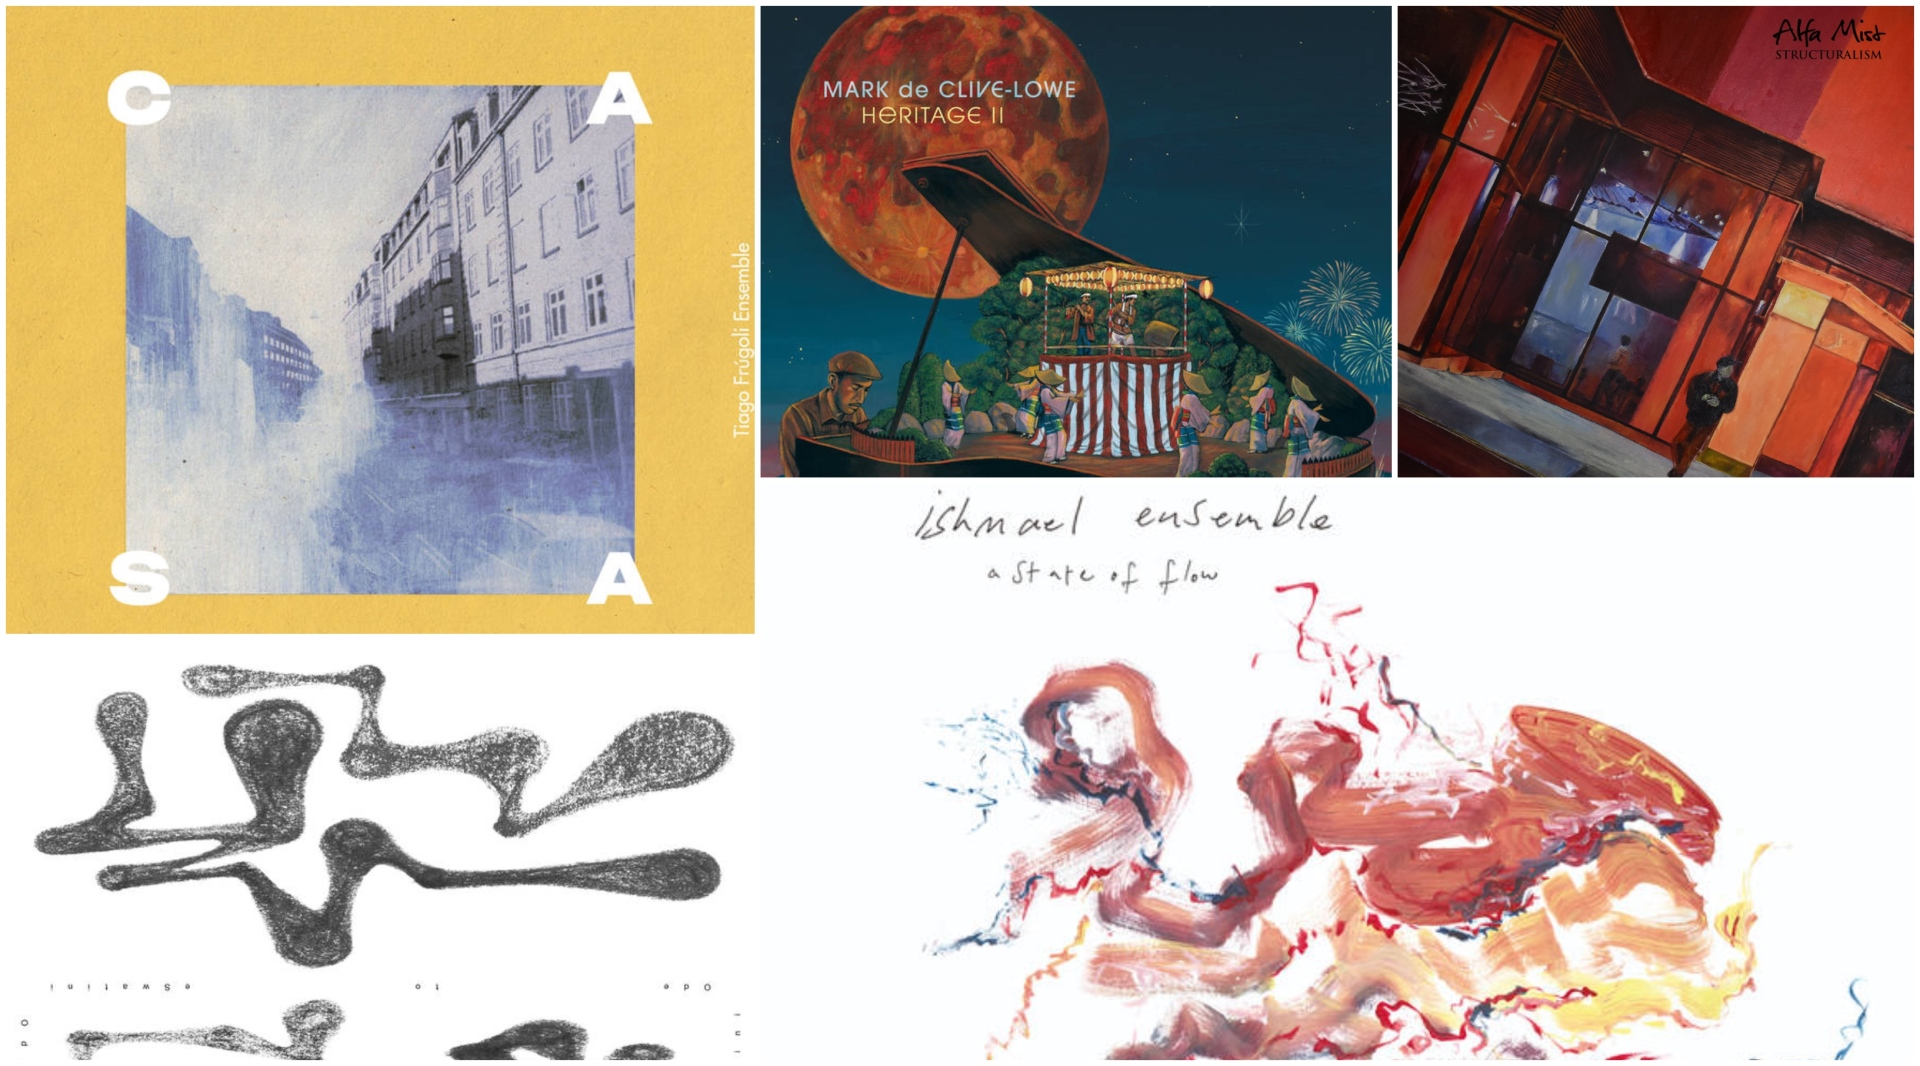 New albums from Tiago Frúgoli Ensemble, Sydney and more..